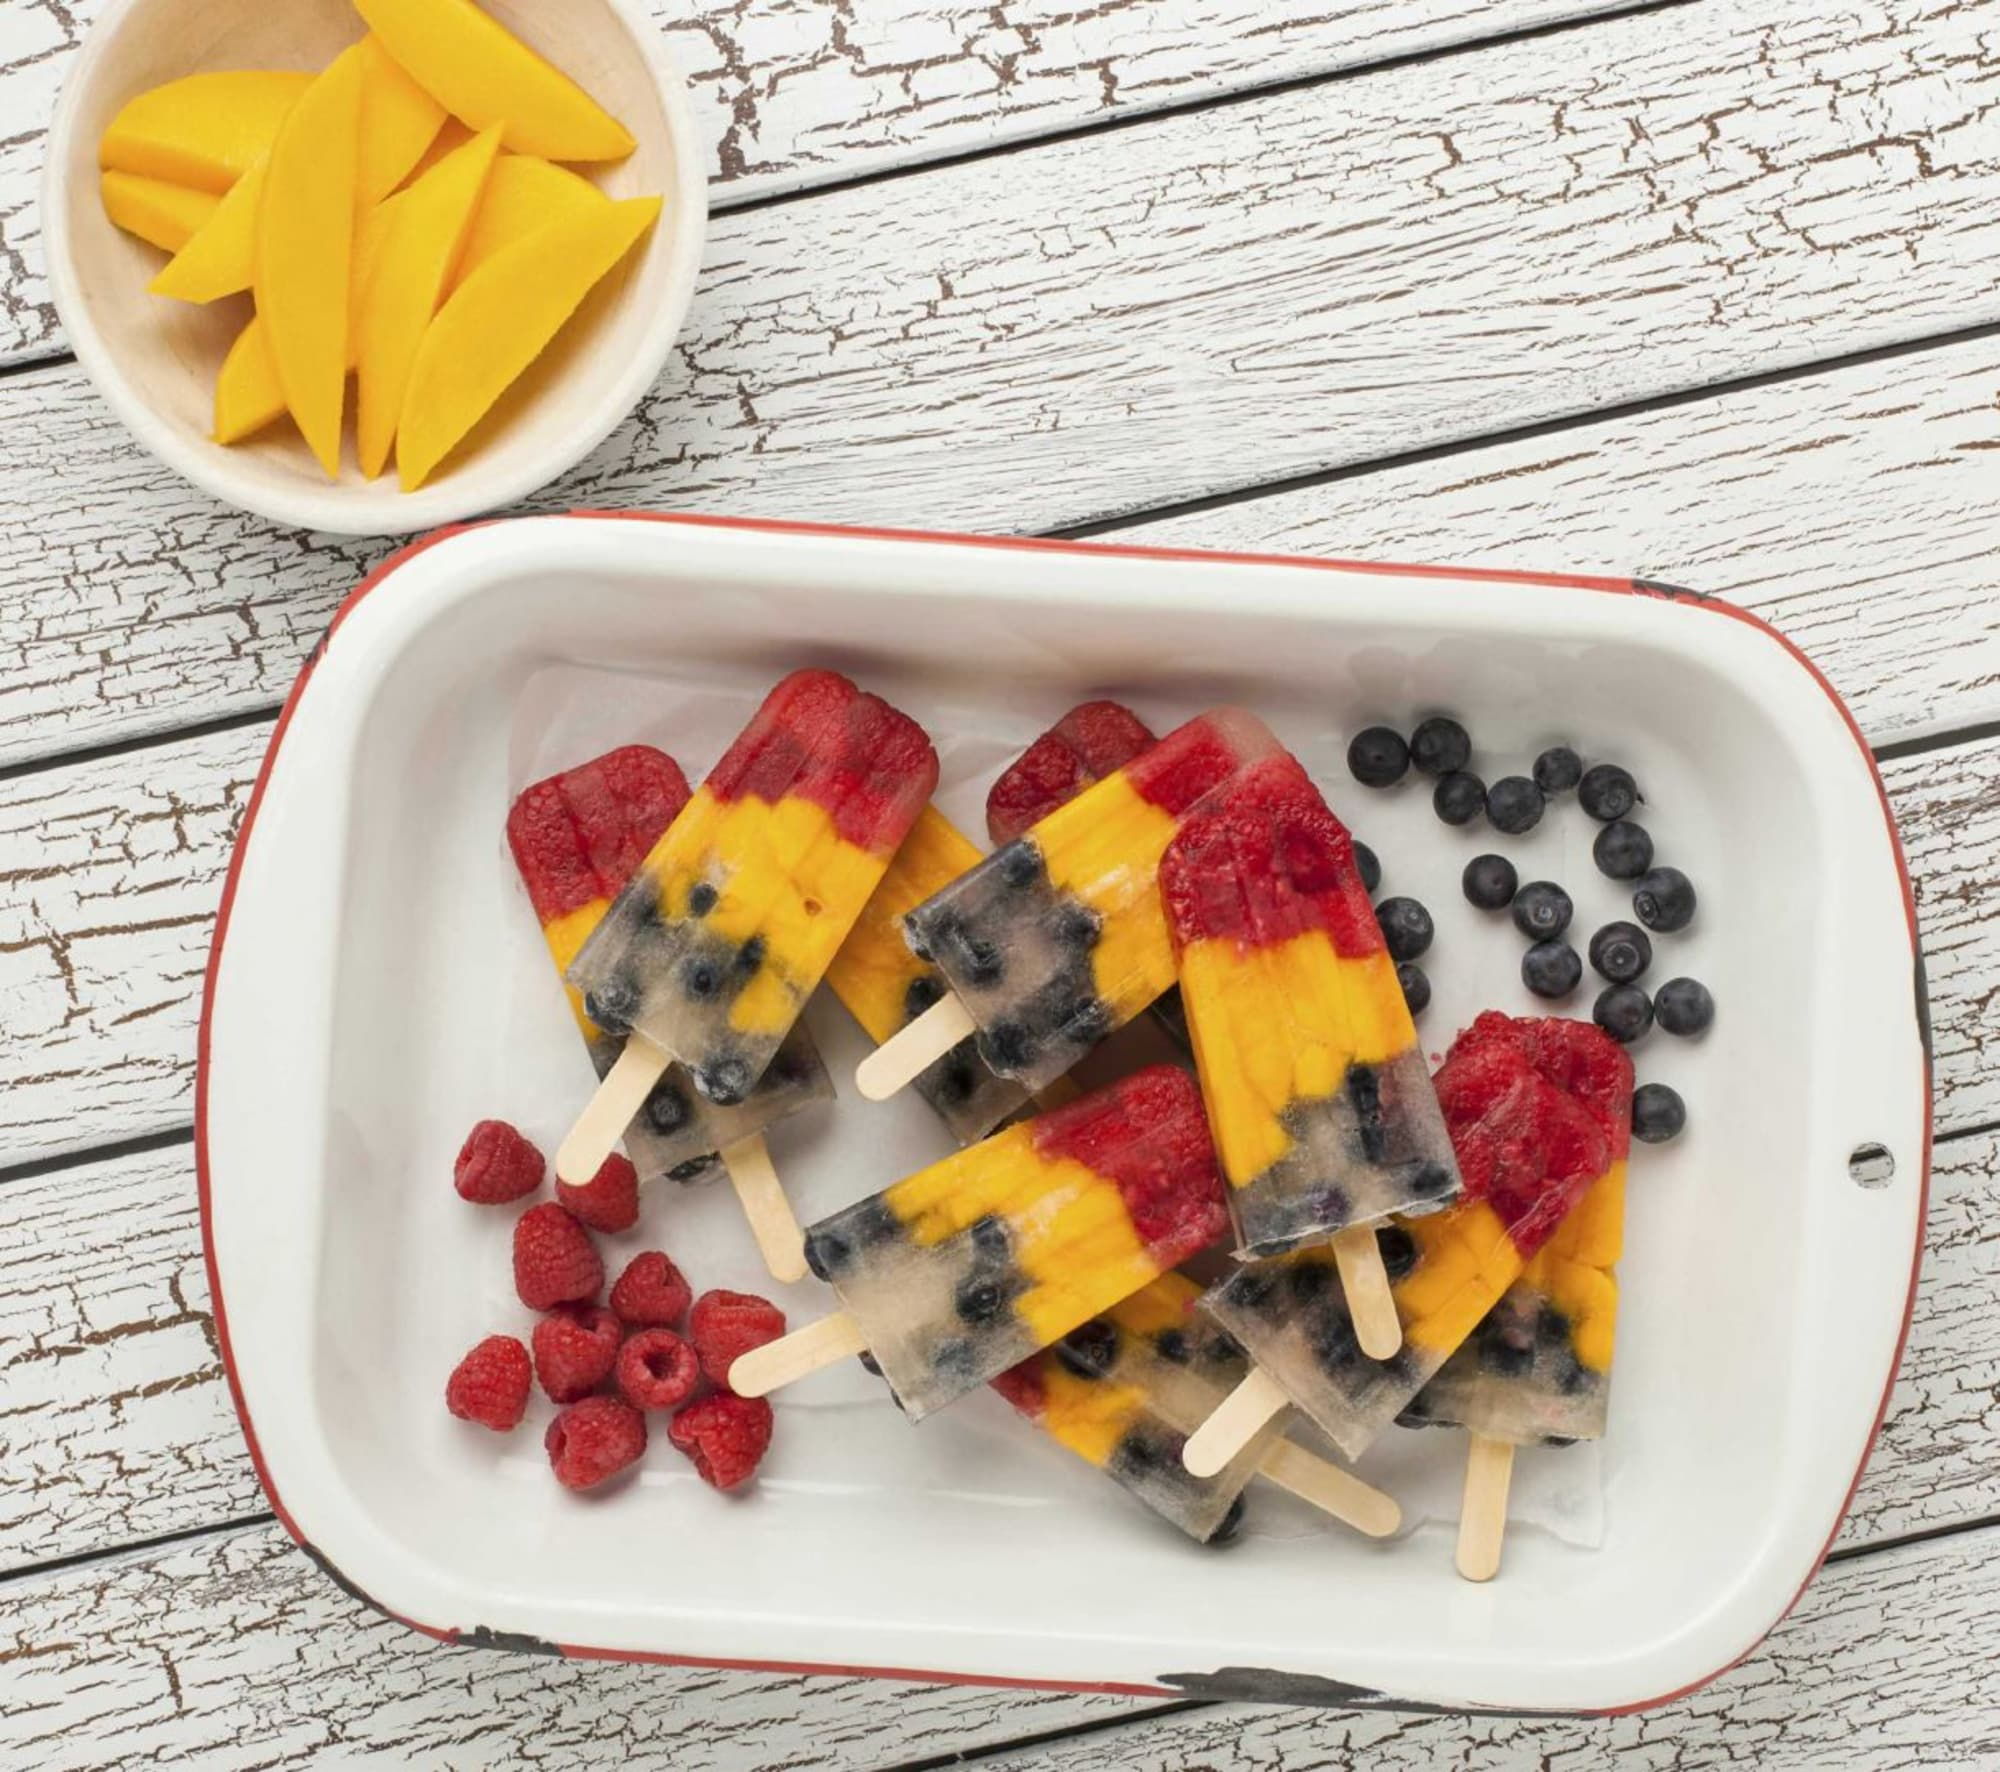 Easy fruit popsicle recipes that the whole family will love